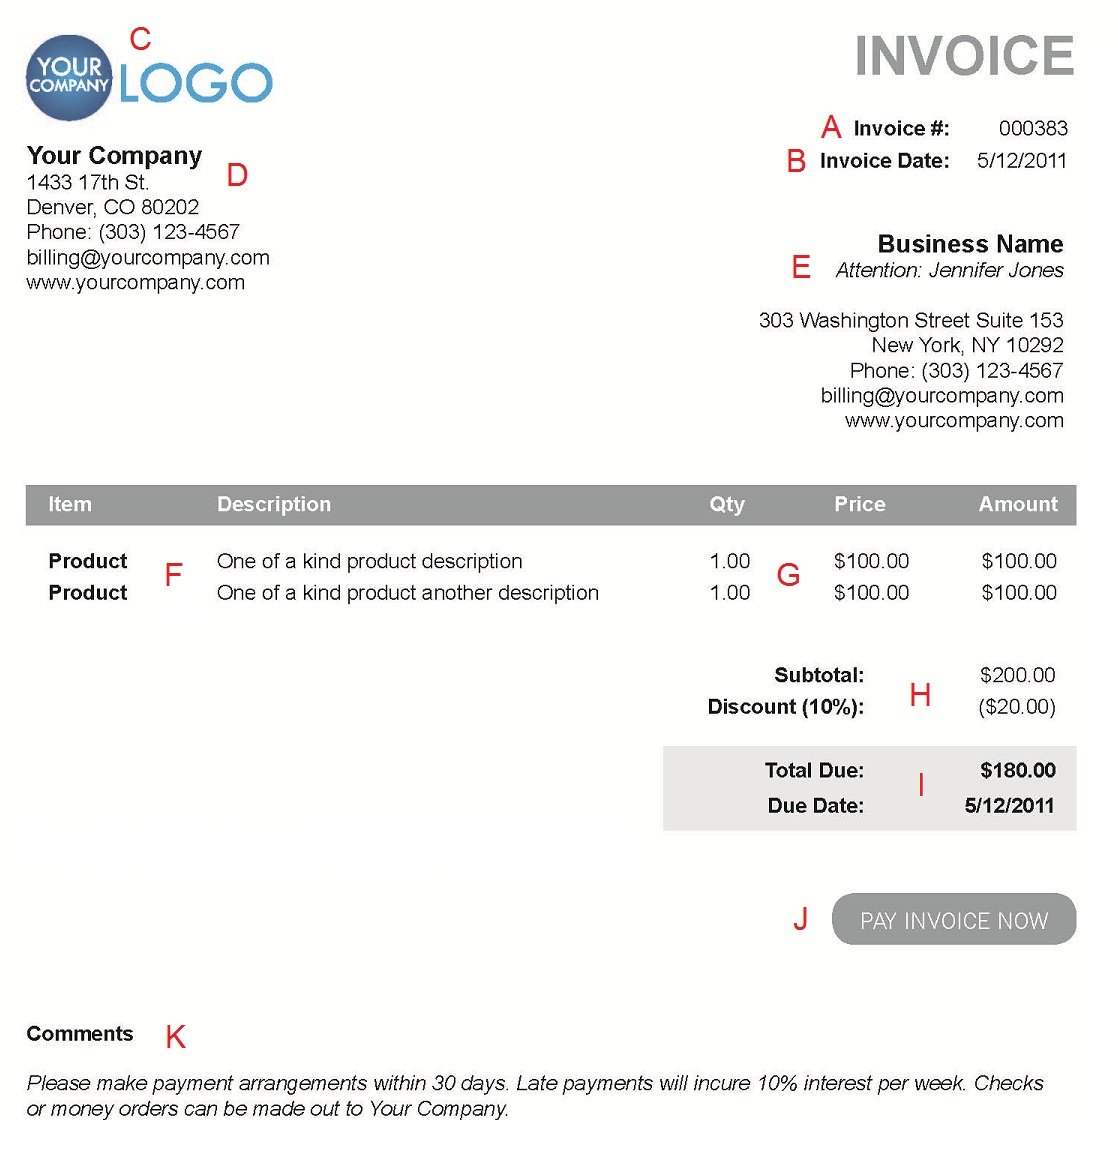 Massenargcus  Pretty The  Different Sections Of An Electronic Payment Invoice With Gorgeous A  With Attractive Whmcs Invoice Template Also Tax Invoice Number In Addition Make Your Own Invoice Online And Total Invoice As Well As Australian Tax Invoice Template Free Additionally Invoice And Po From Paysimplecom With Massenargcus  Gorgeous The  Different Sections Of An Electronic Payment Invoice With Attractive A  And Pretty Whmcs Invoice Template Also Tax Invoice Number In Addition Make Your Own Invoice Online From Paysimplecom